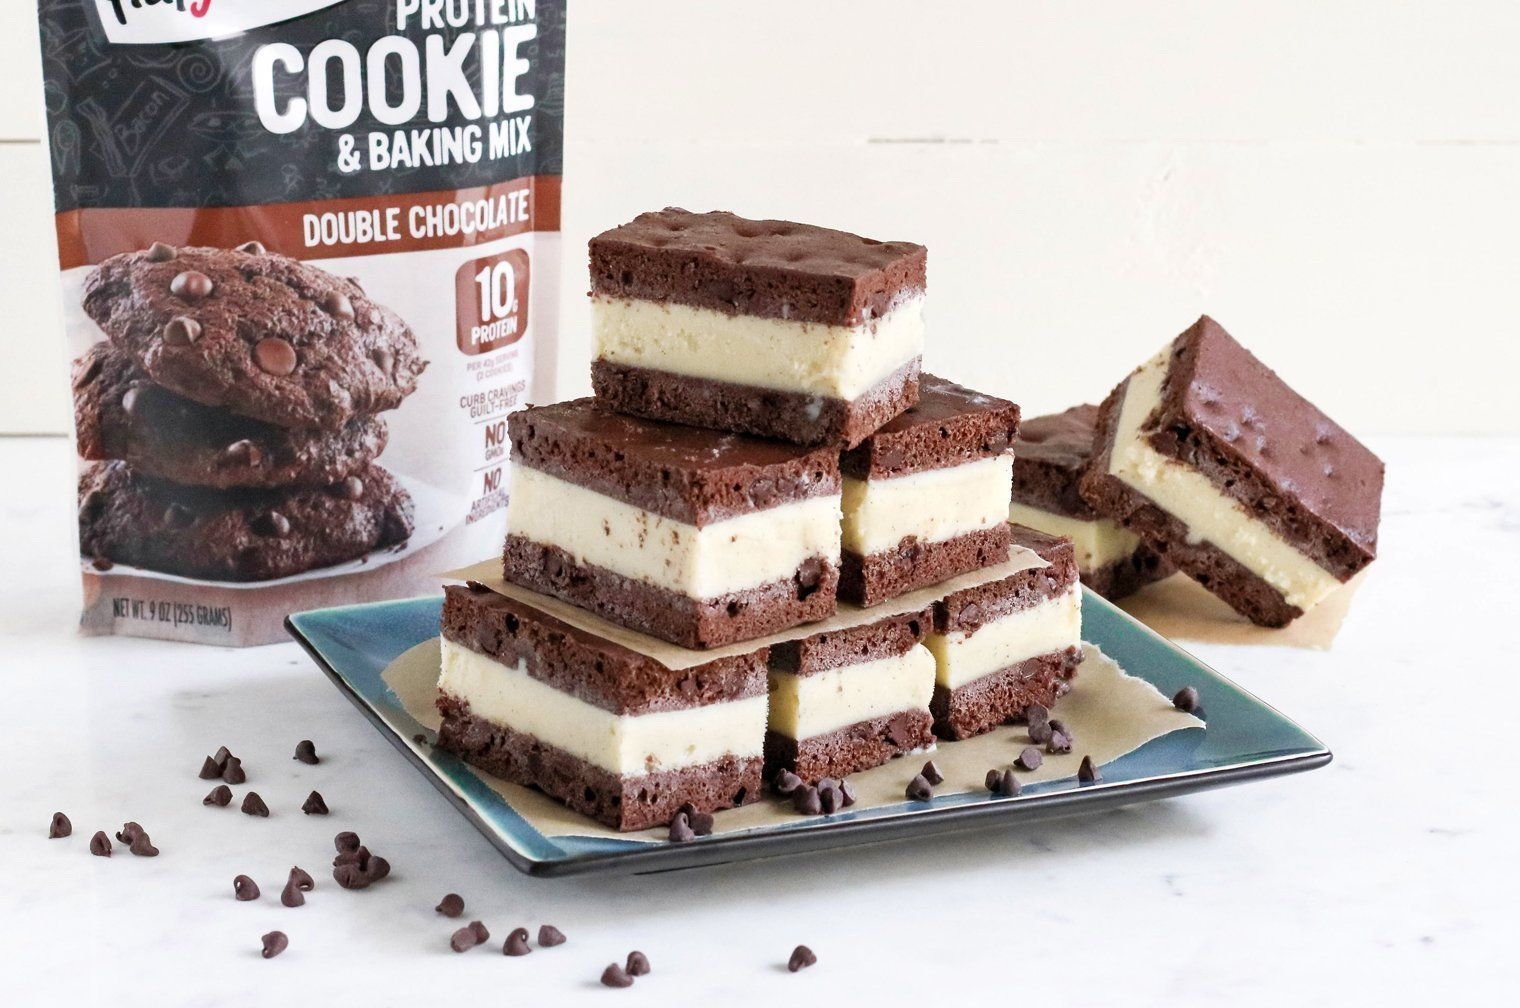 Protein Ice Cream Sandwiches #proteinicecream Ice Cream Sandwiches Recipe | FlapJacked #icecreamsandwich Protein Ice Cream Sandwiches #proteinicecream Ice Cream Sandwiches Recipe | FlapJacked #ketoicecream